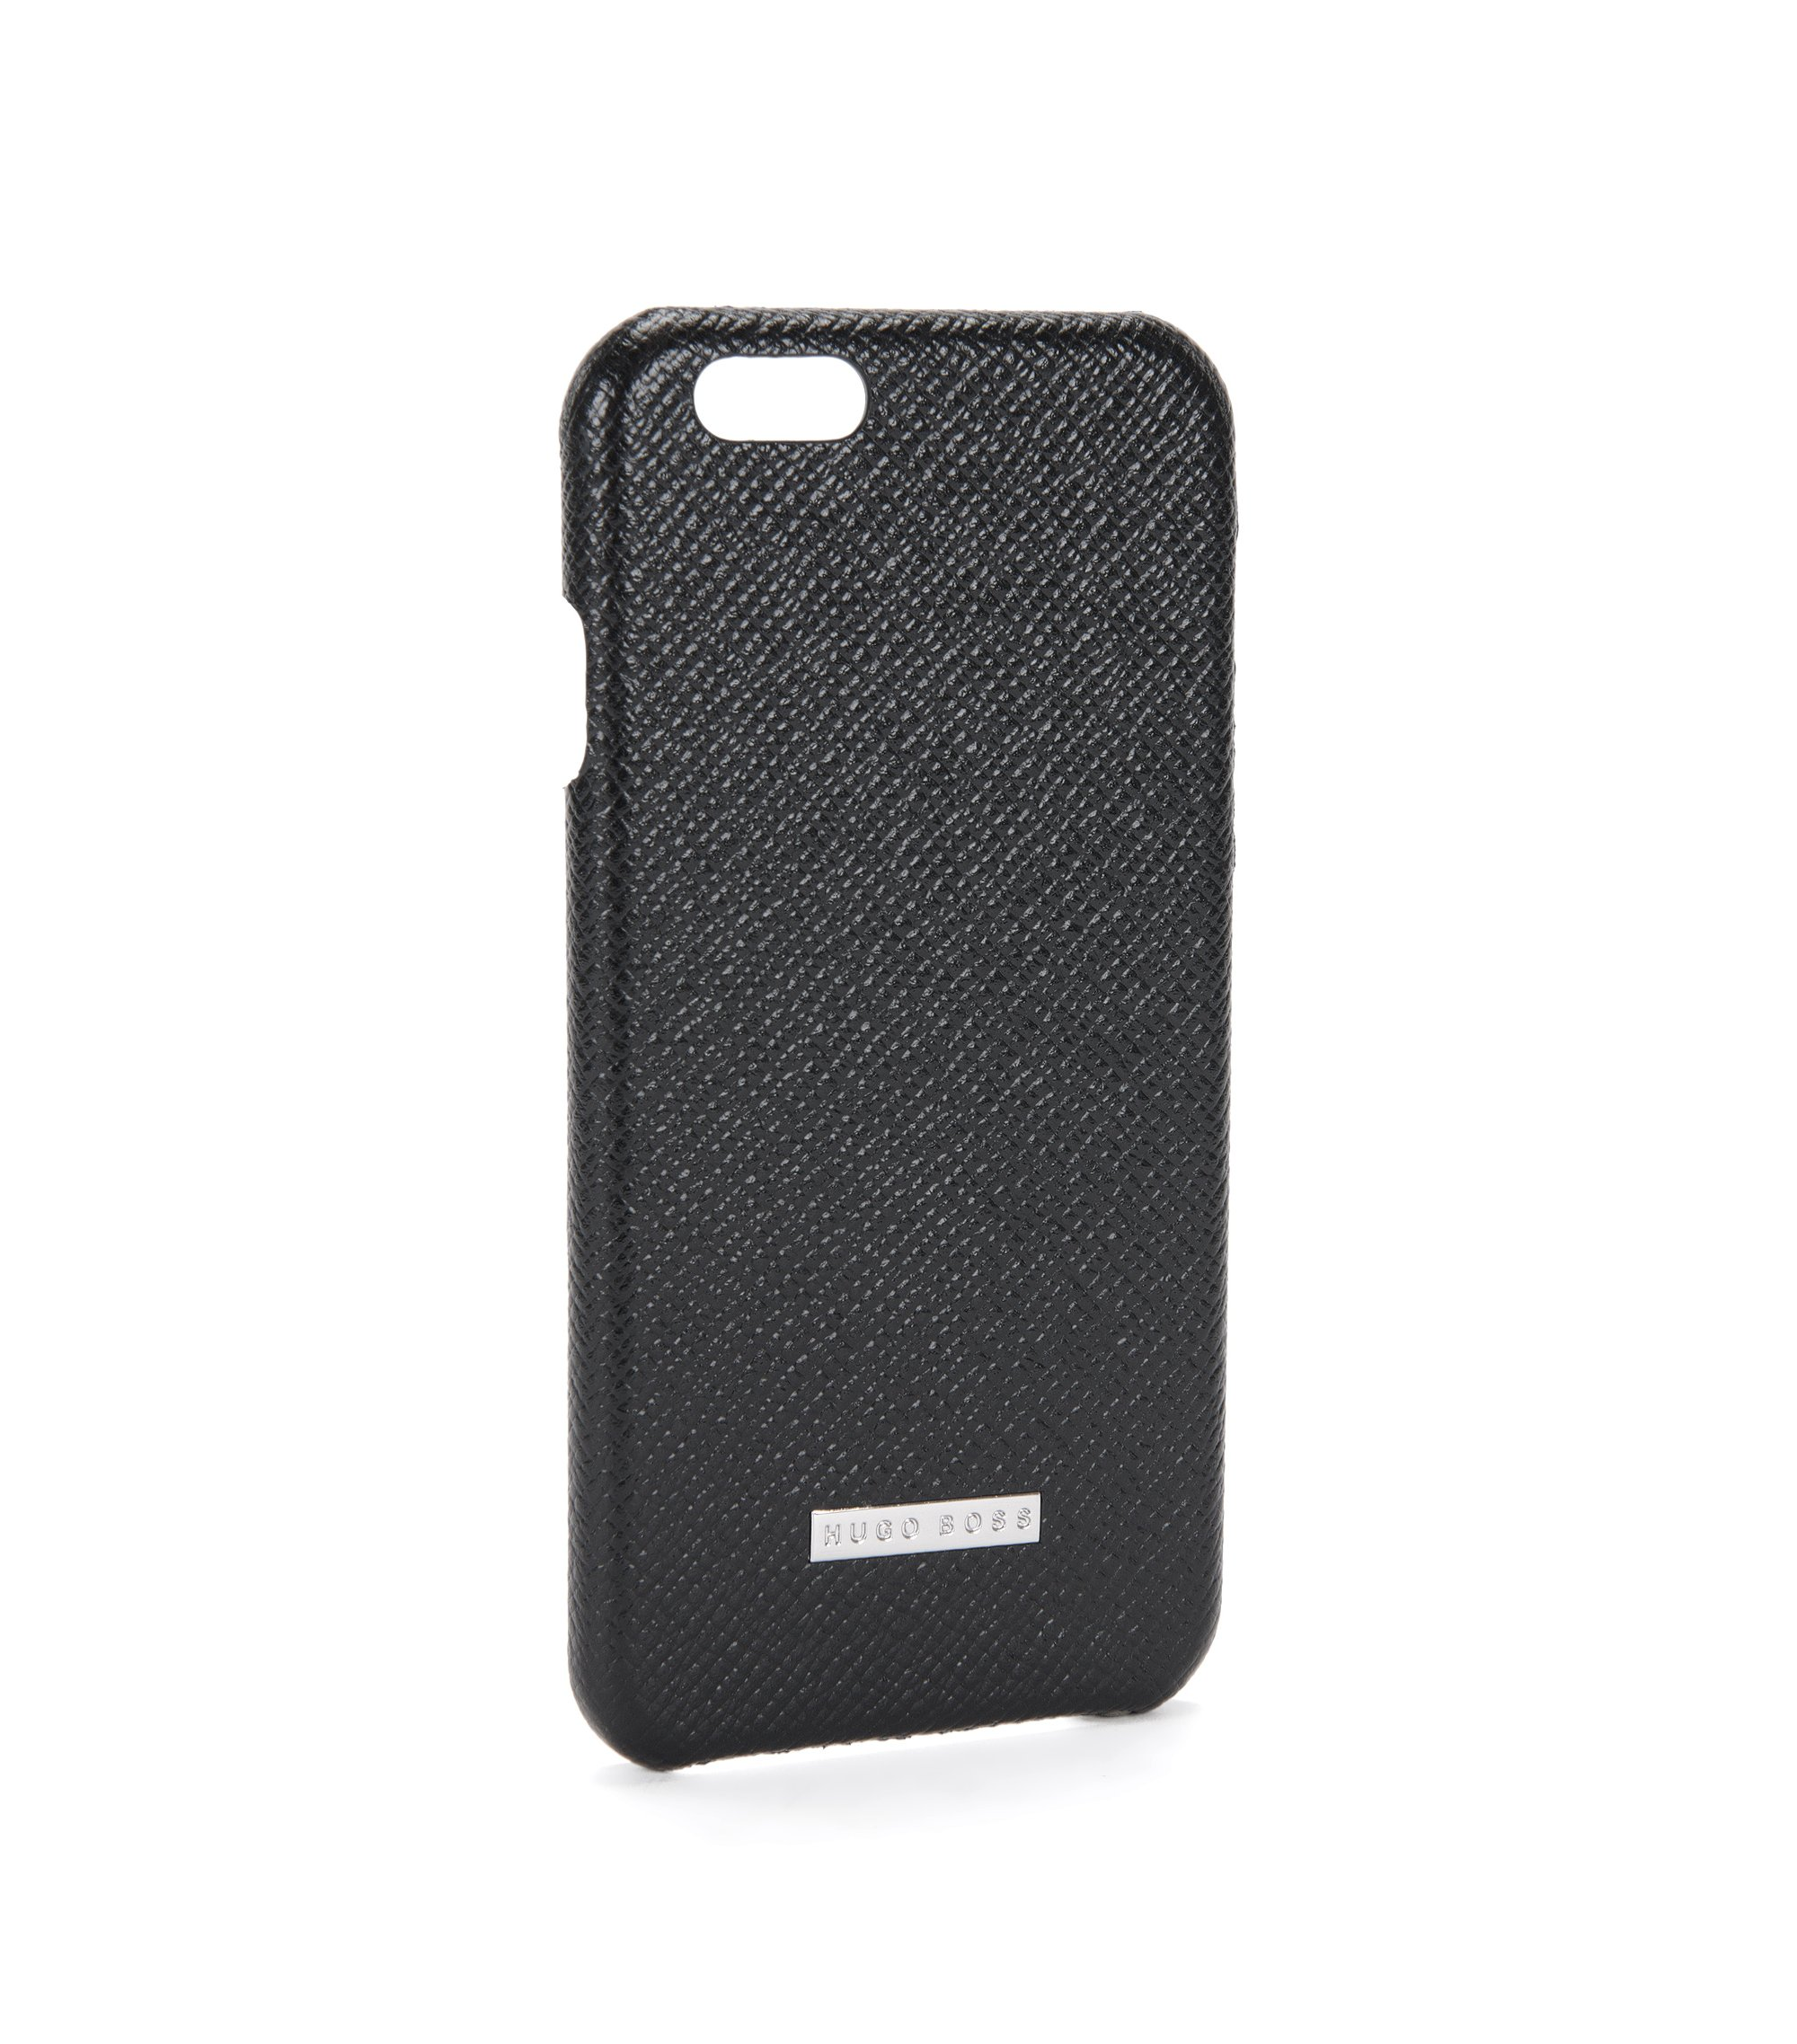 Calfskin Embossed iPhone 6 Phone Case | Signature Phone 6, Black